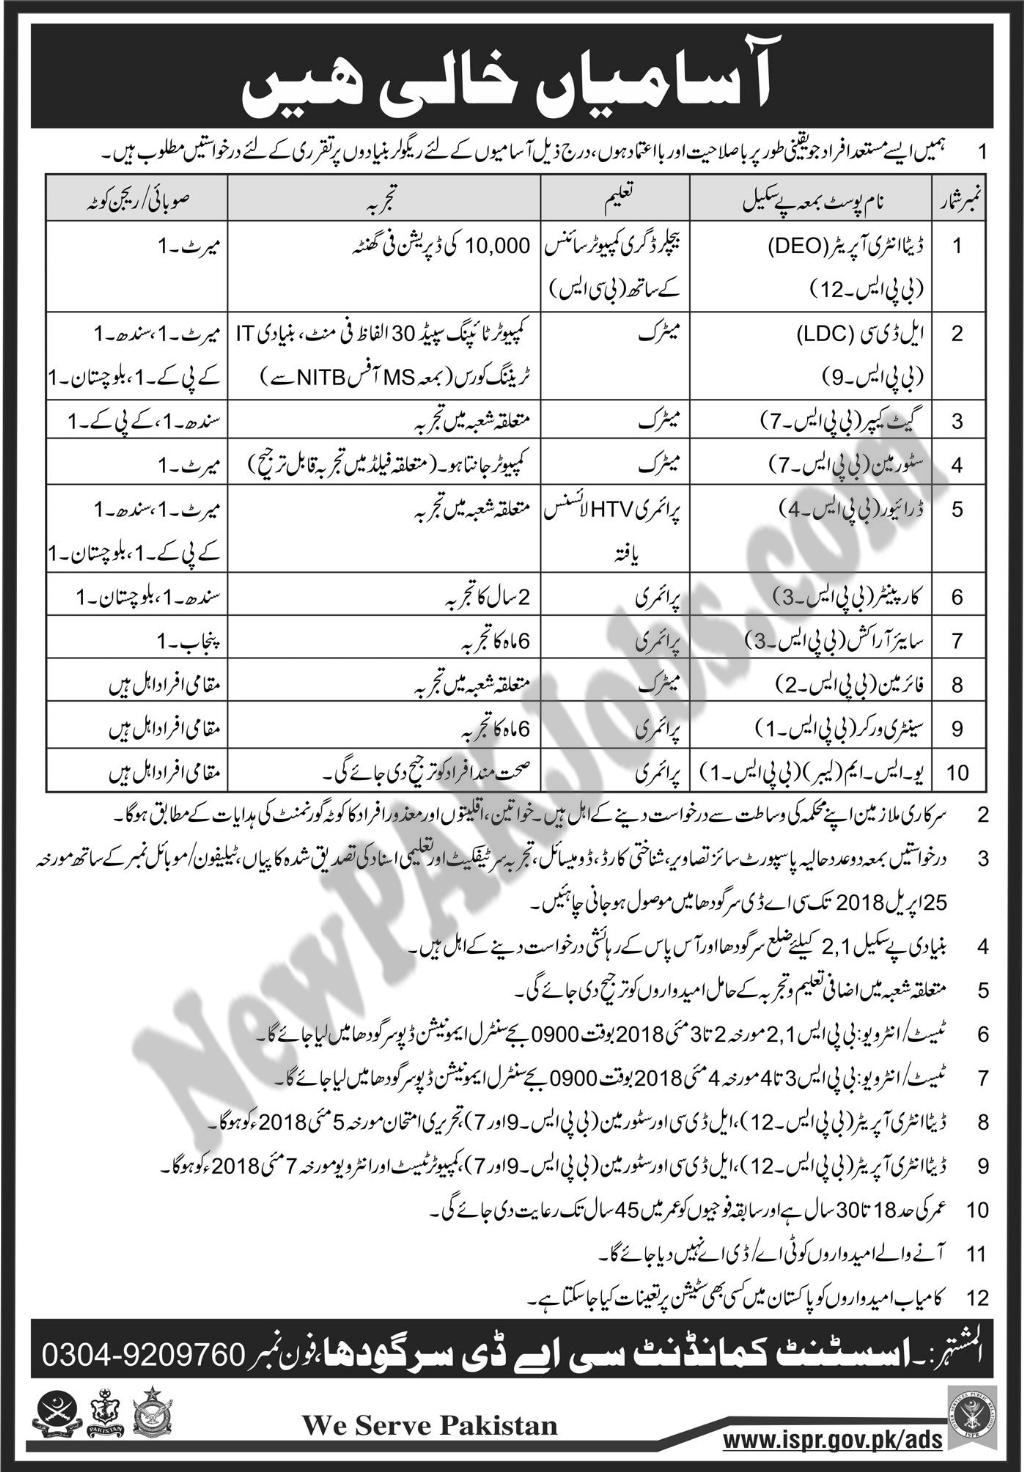 Pakistan Army Sargodha Base Latest Today Jobs 2018